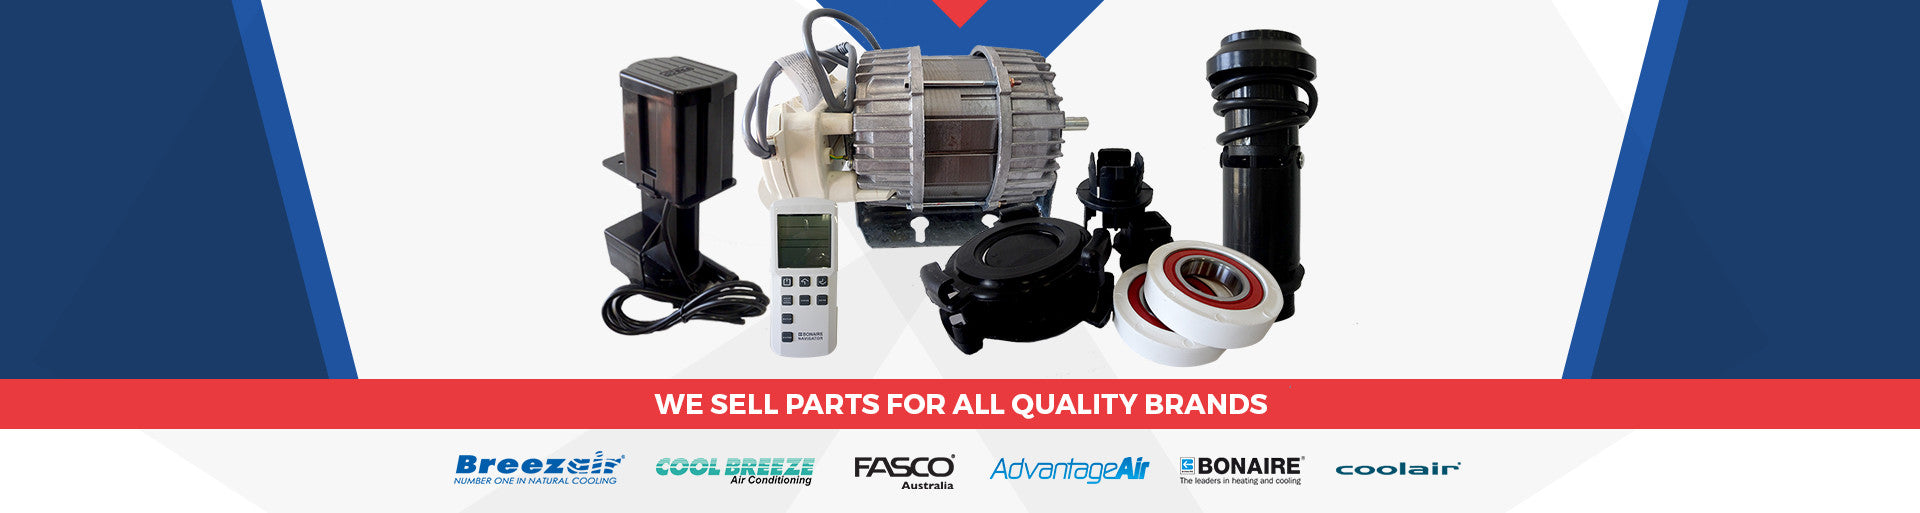 Airconditioning Spare Parts Service Installation Perth Airspares Swamp Cooler Air Conditioner Wiring Diagram Conditioning Specials